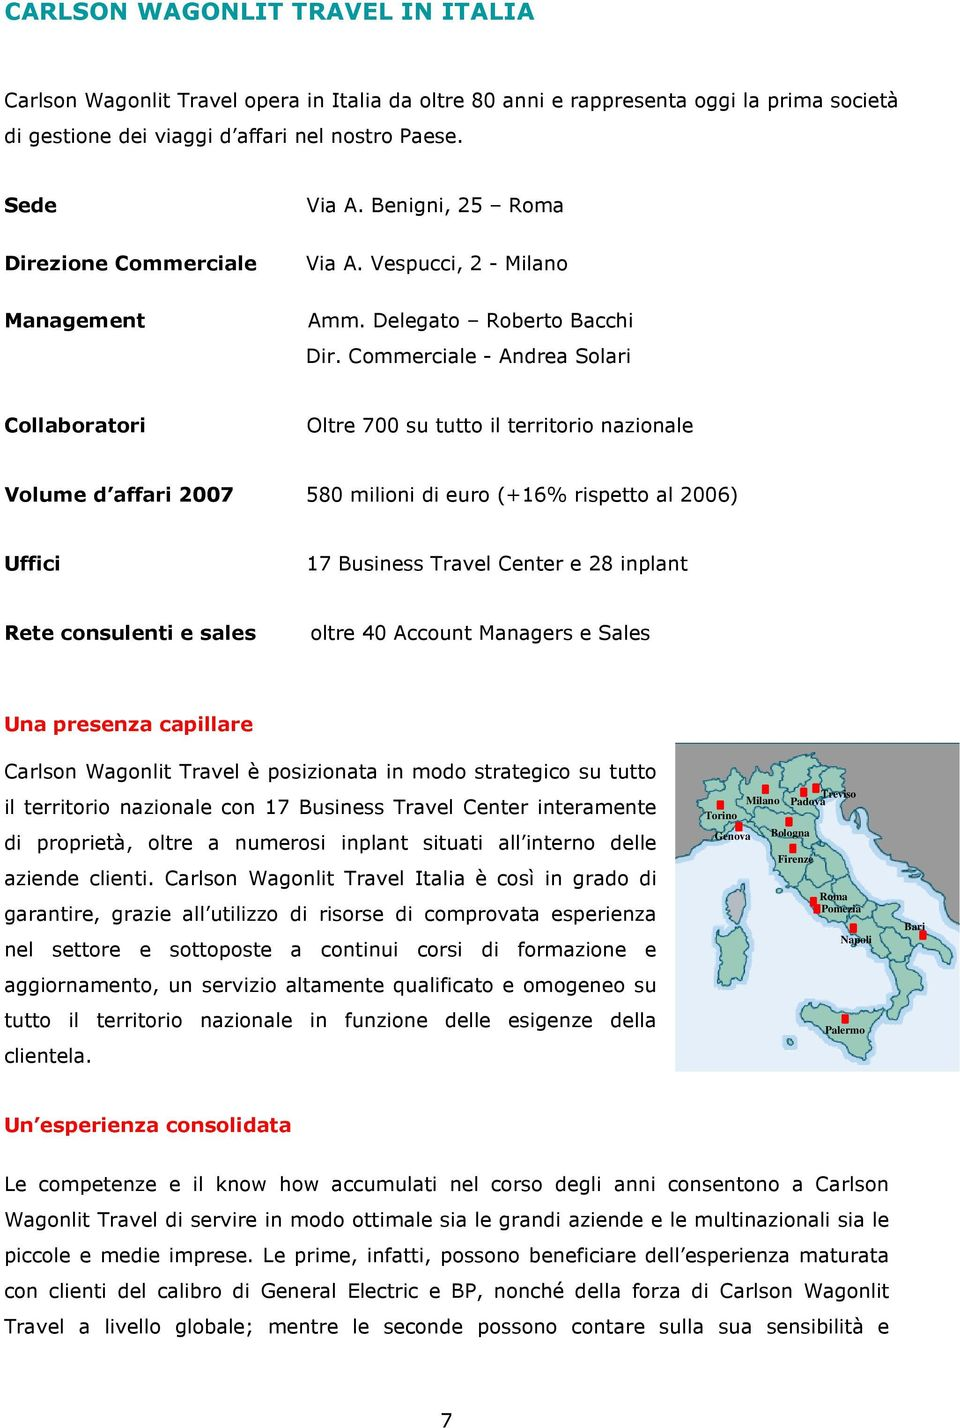 Commerciale - Andrea Solari Collaboratori Oltre 700 su tutto il territorio nazionale Volume d affari 2007 580 milioni di euro (+16% rispetto al 2006) Uffici 17 Business Travel Center e 28 inplant